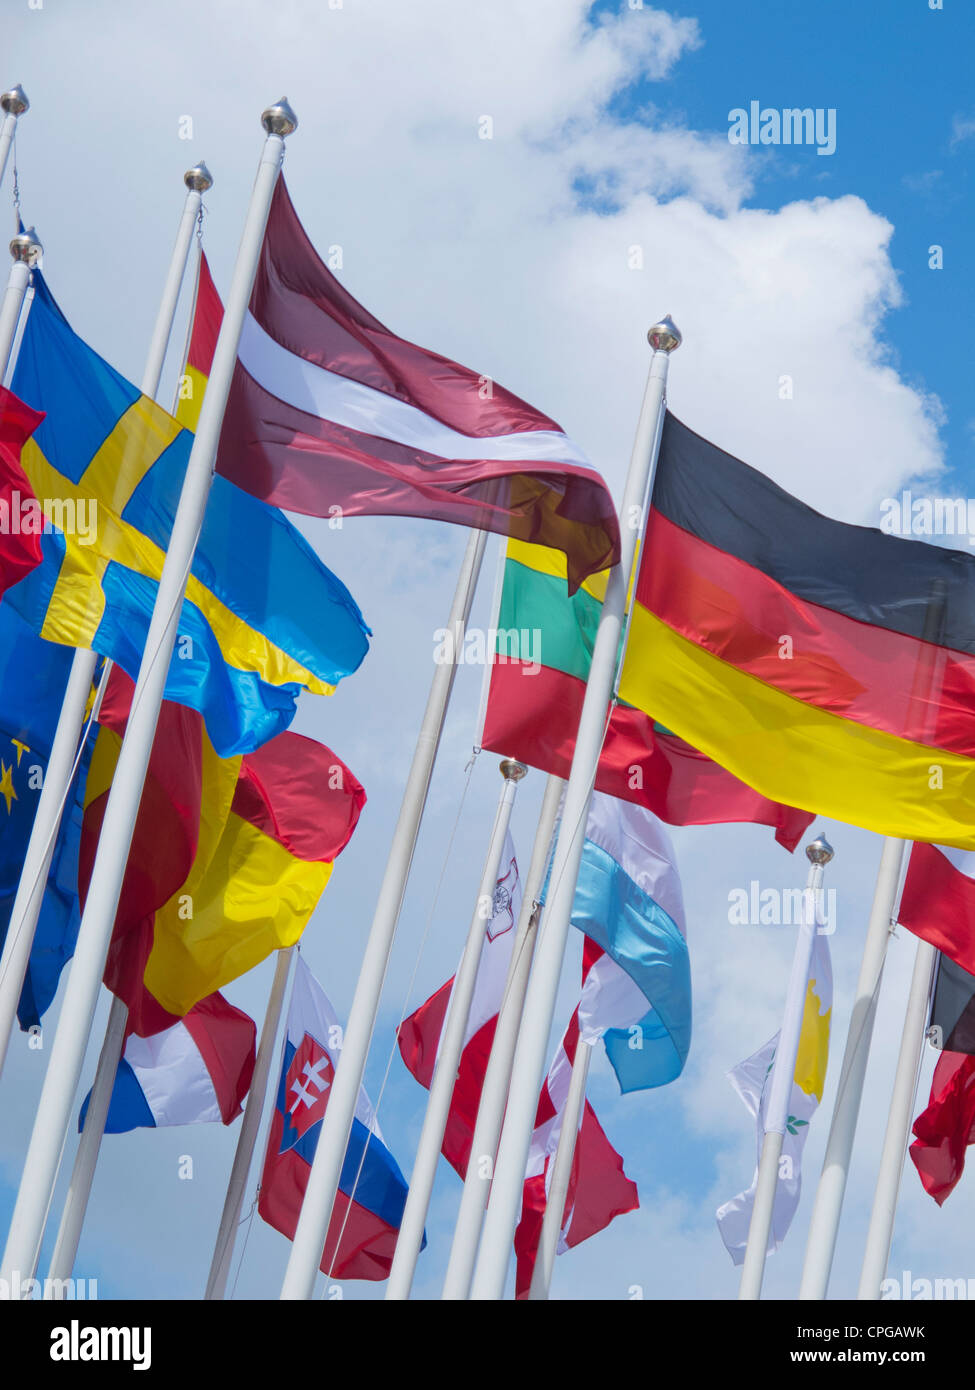 Flags of many nations flying - Stock Image